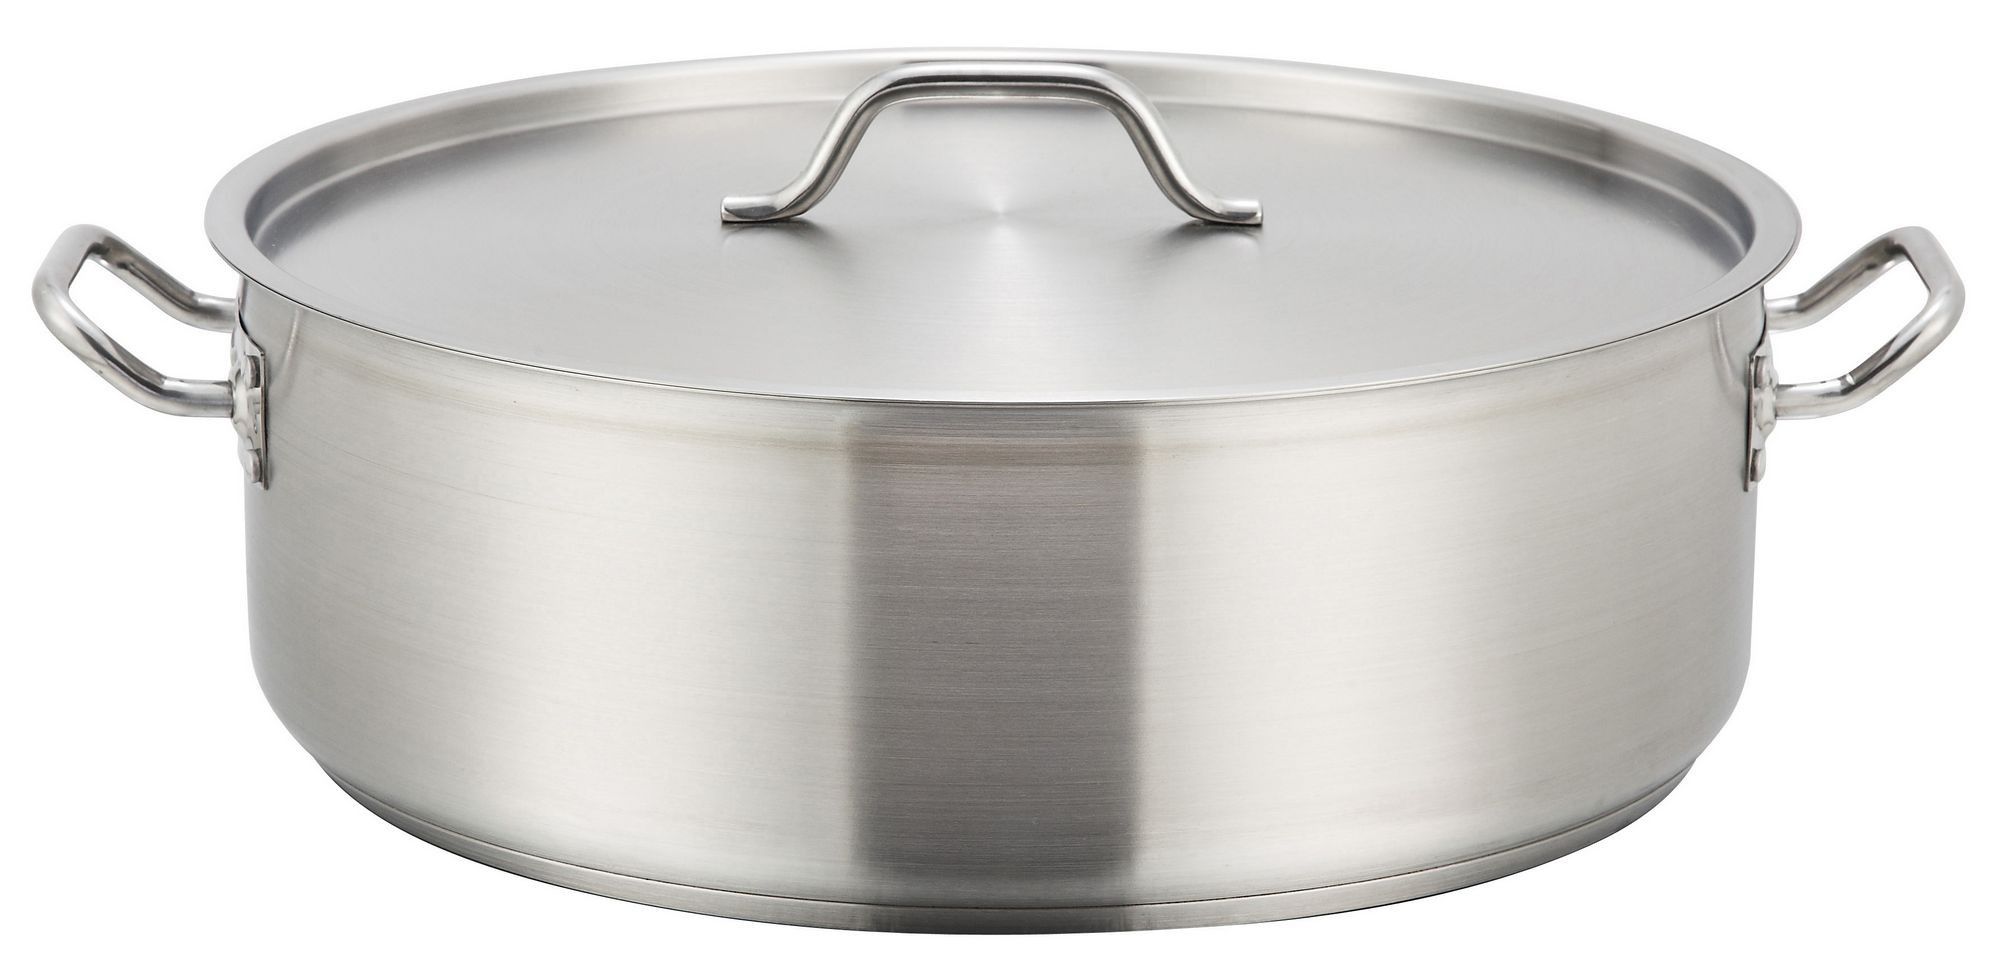 Stainless Steel 15-Quart Brazier with Lid